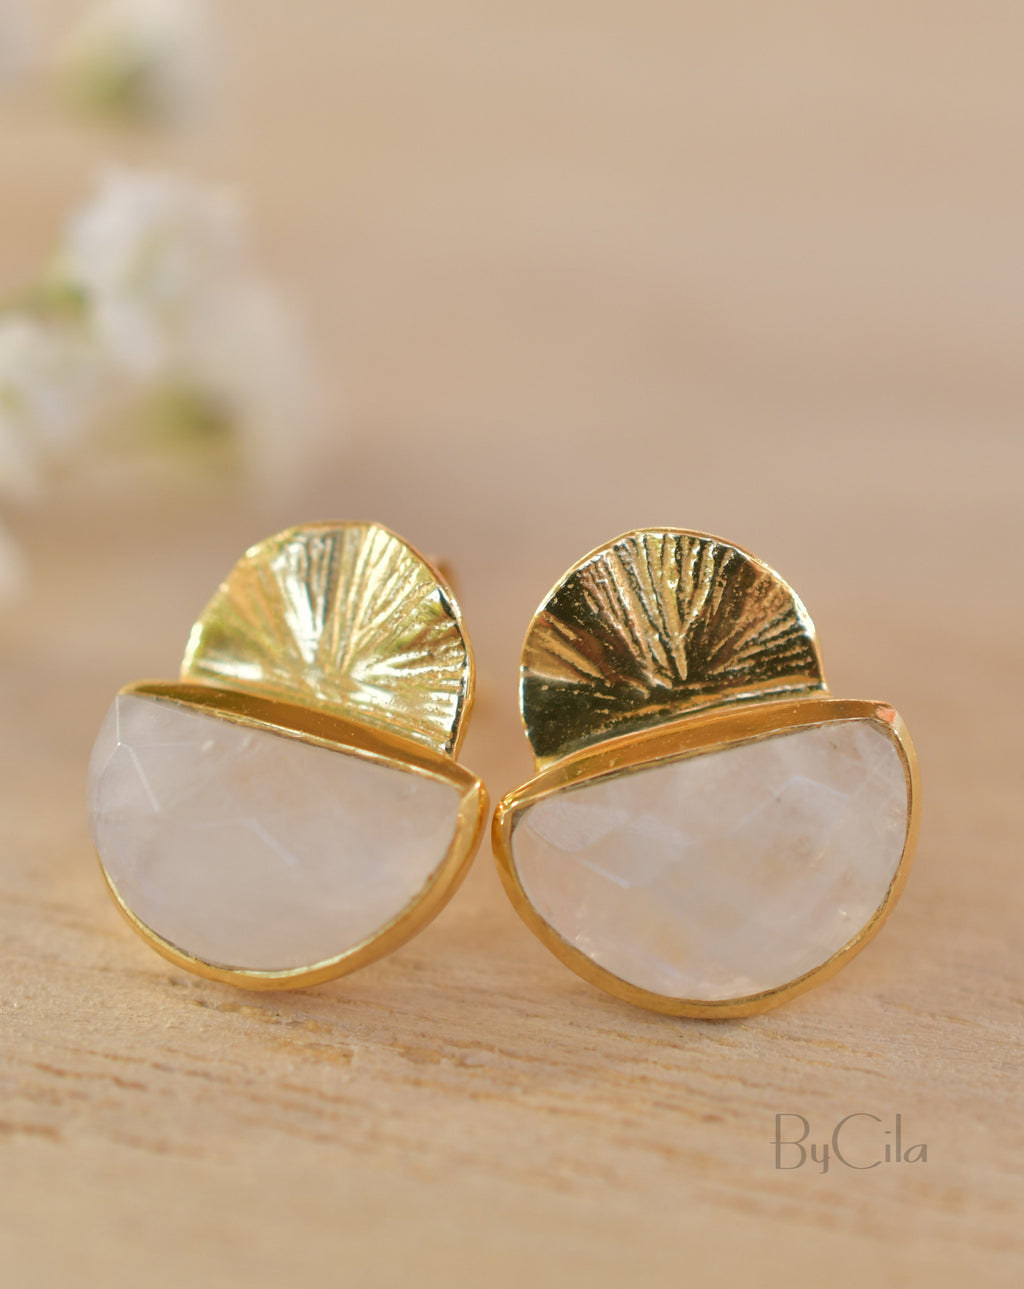 Moonstone Stud Earrings Gold Plated 18k * Gemstone * Earrings * Rainbow Moonstone * Handmade * Boho * Modern * BJE158